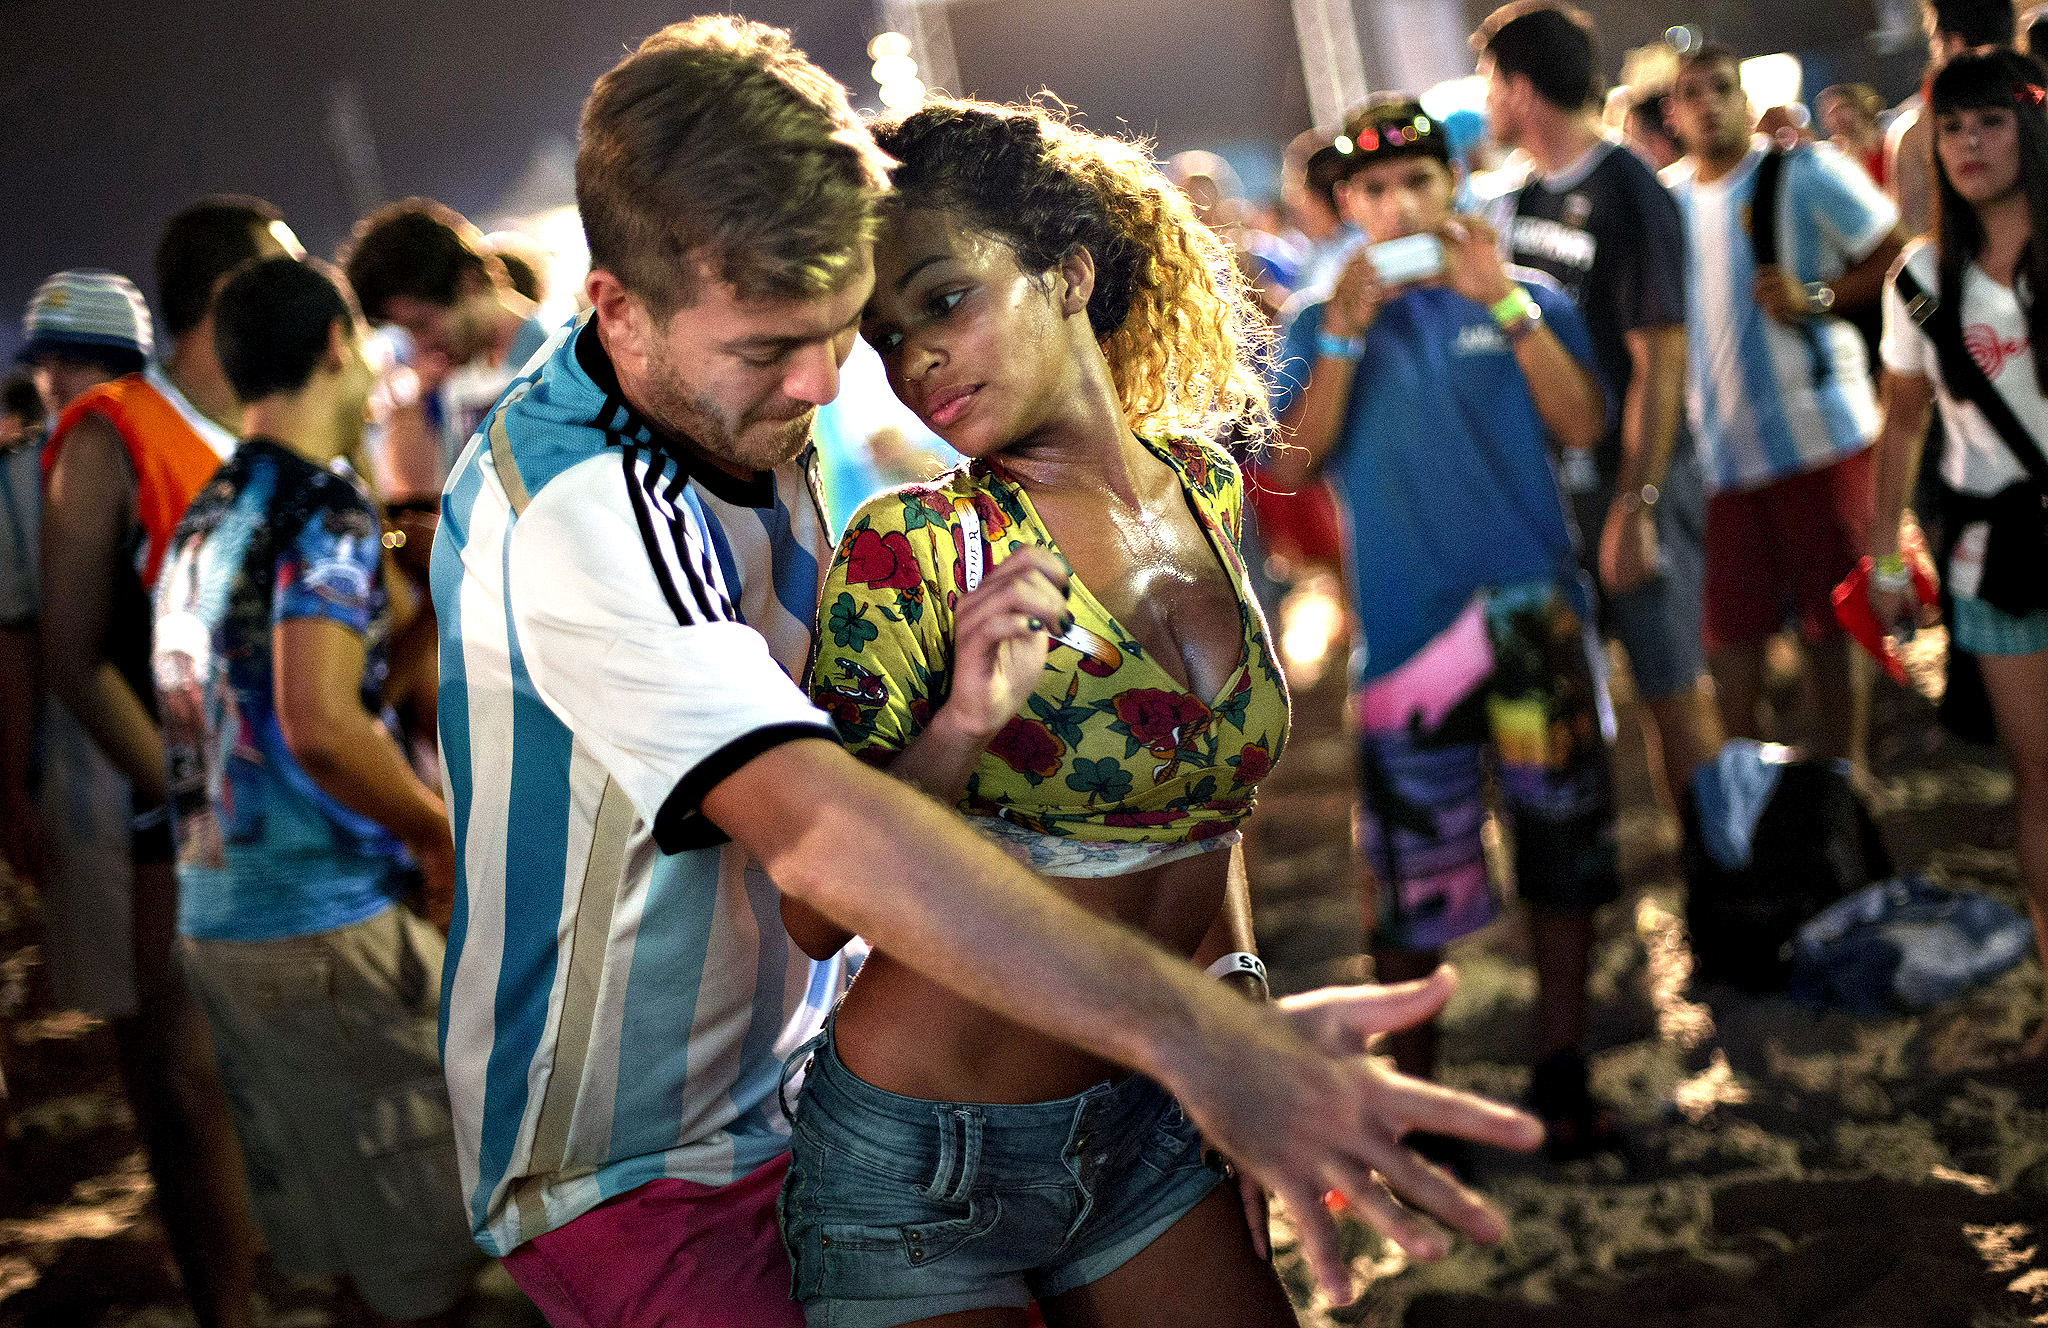 A woman from Brazil and a man from Argentina dance samba at the World Cup Fan Fest 2014, on Copacabana beach, in Rio de Janeiro, Brazil, Wednesday, July 9, 2014. The flood of foreign football fans, the vast majority of them men, has been a boon for the single ladies of Brazil, where a demographic imbalance means women outnumber men by more than 4 million nationally.